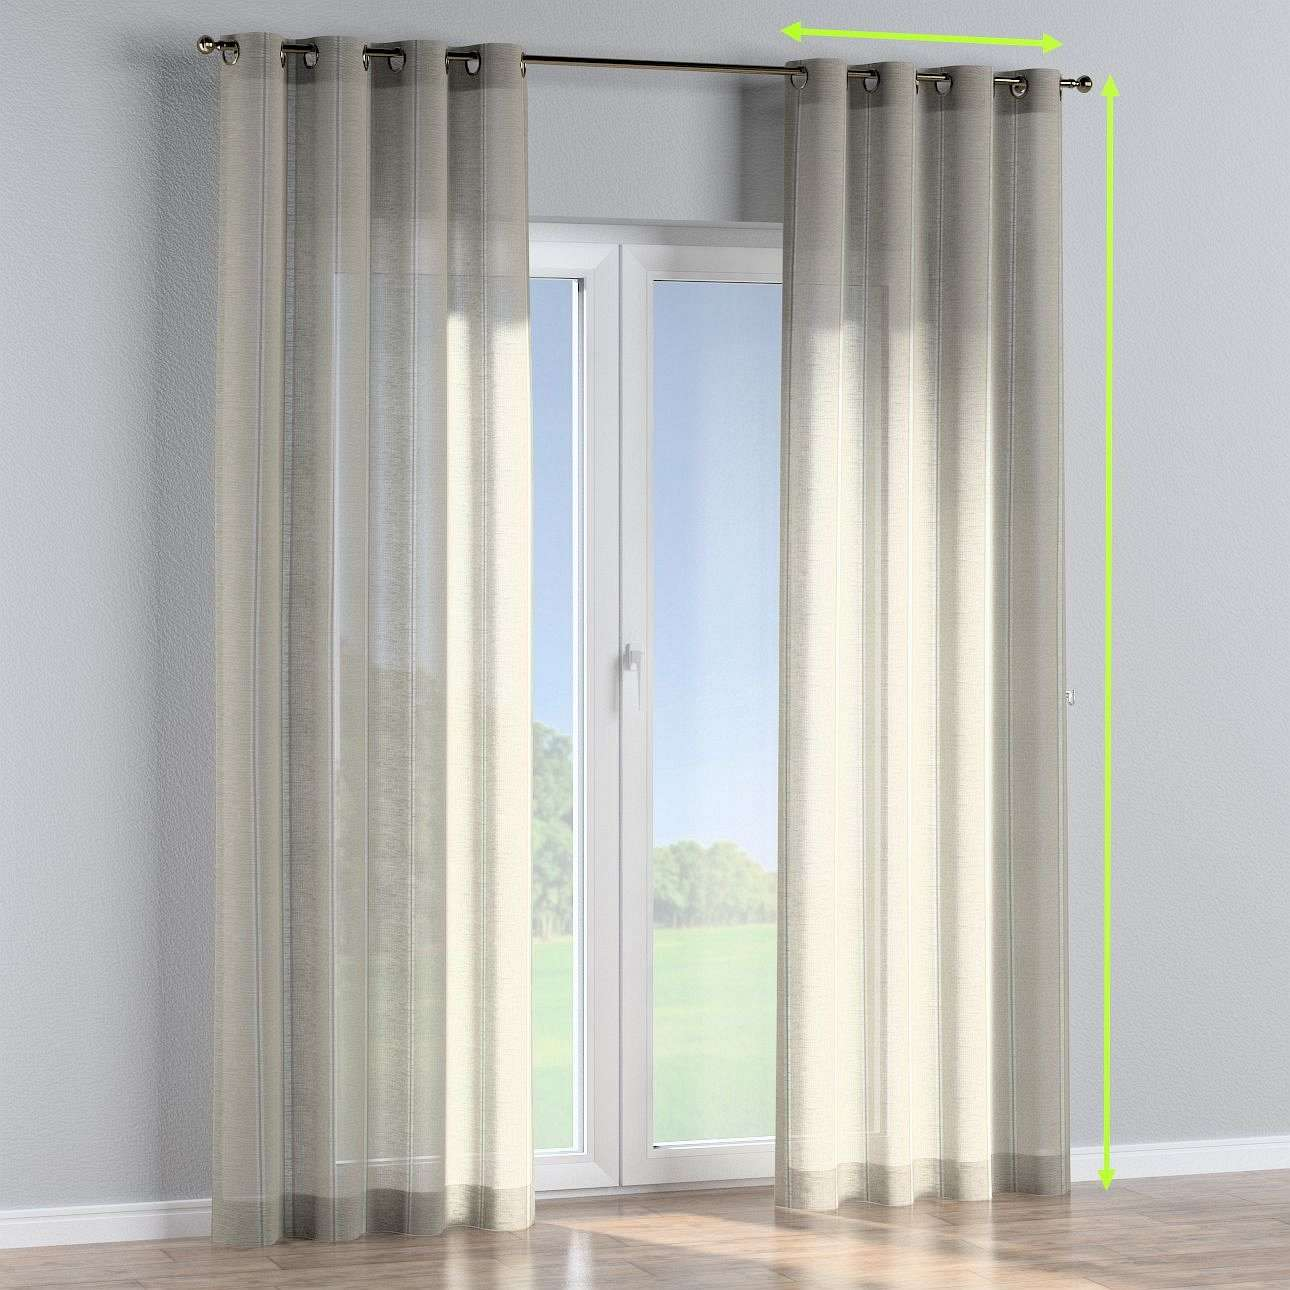 Eyelet curtains in collection Romantica, fabric: 141-32